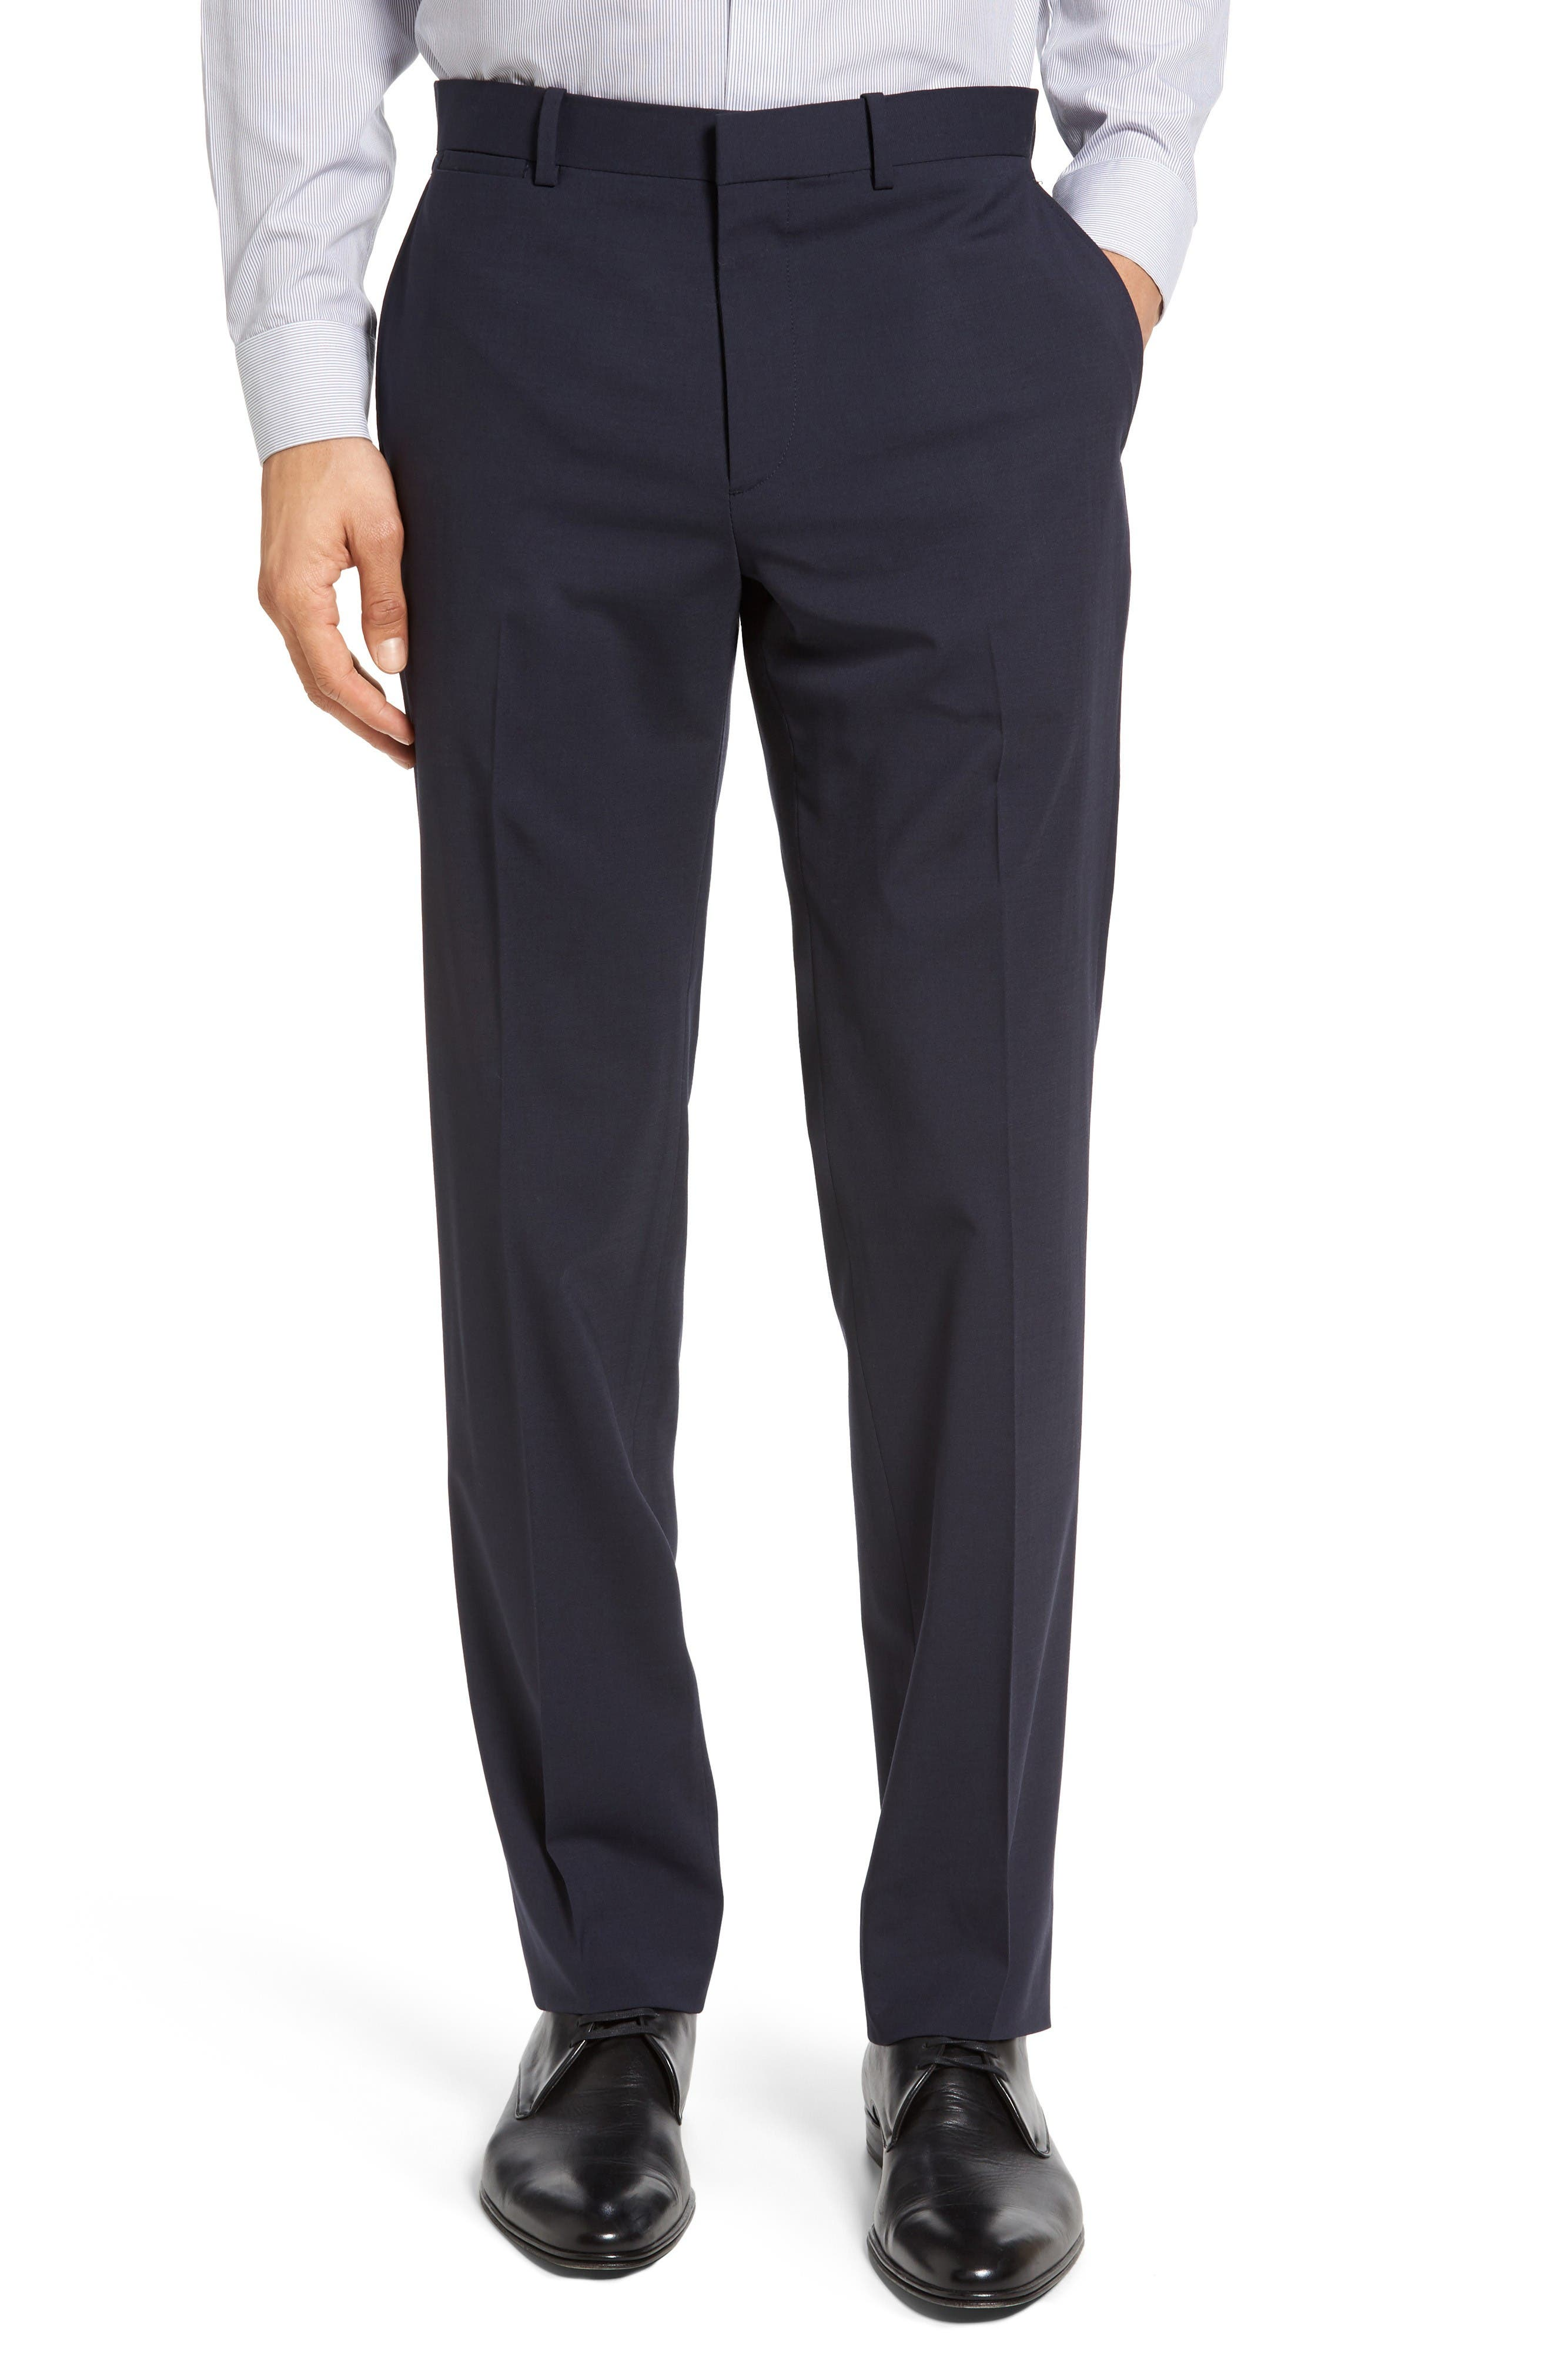 Main Image - Theory Marlo New Tailor 2 Flat Front Solid Stretch Wool Trousers